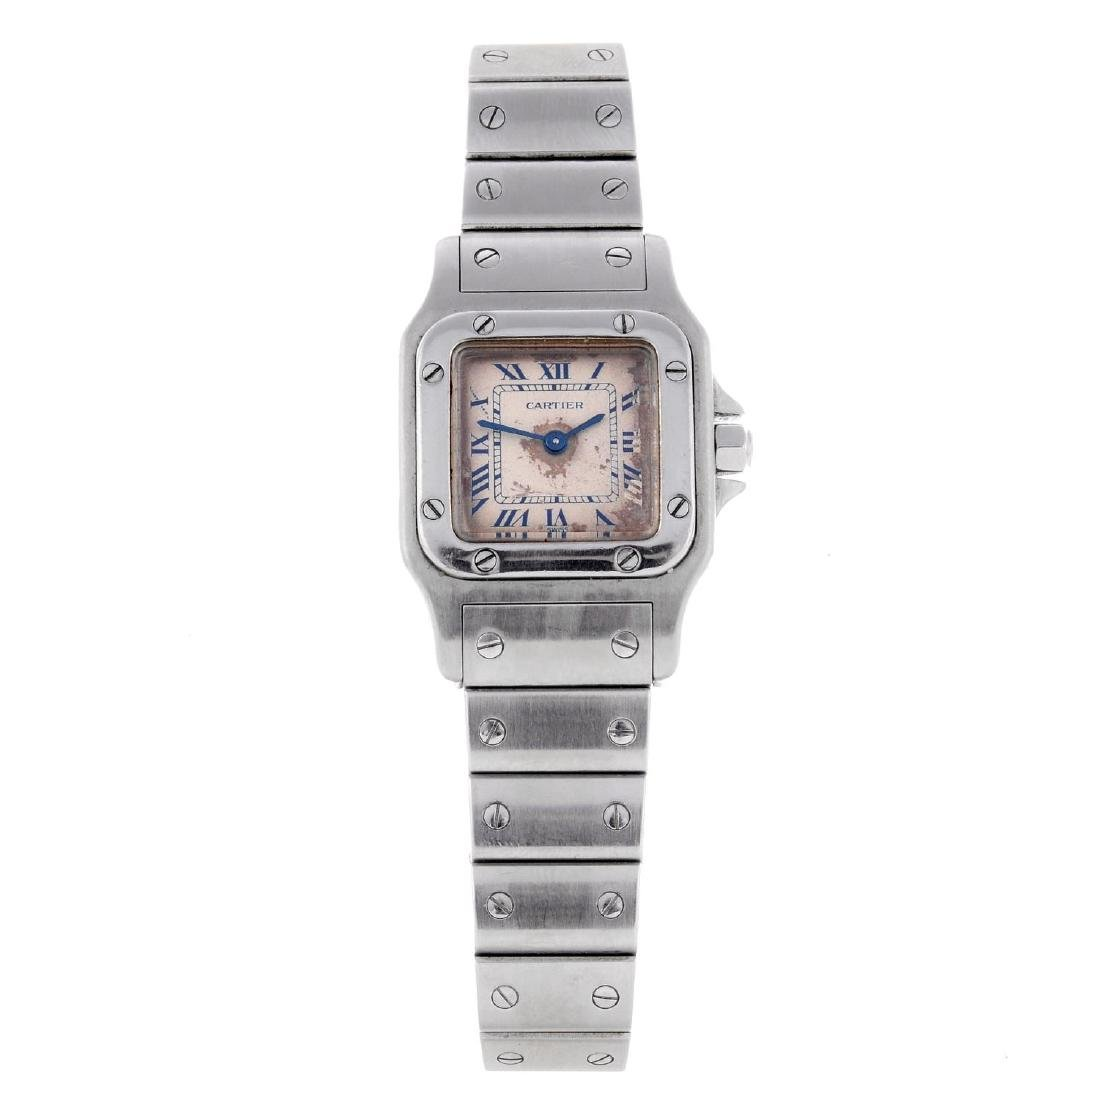 CARTIER - a Santos bracelet watch. Stainless steel